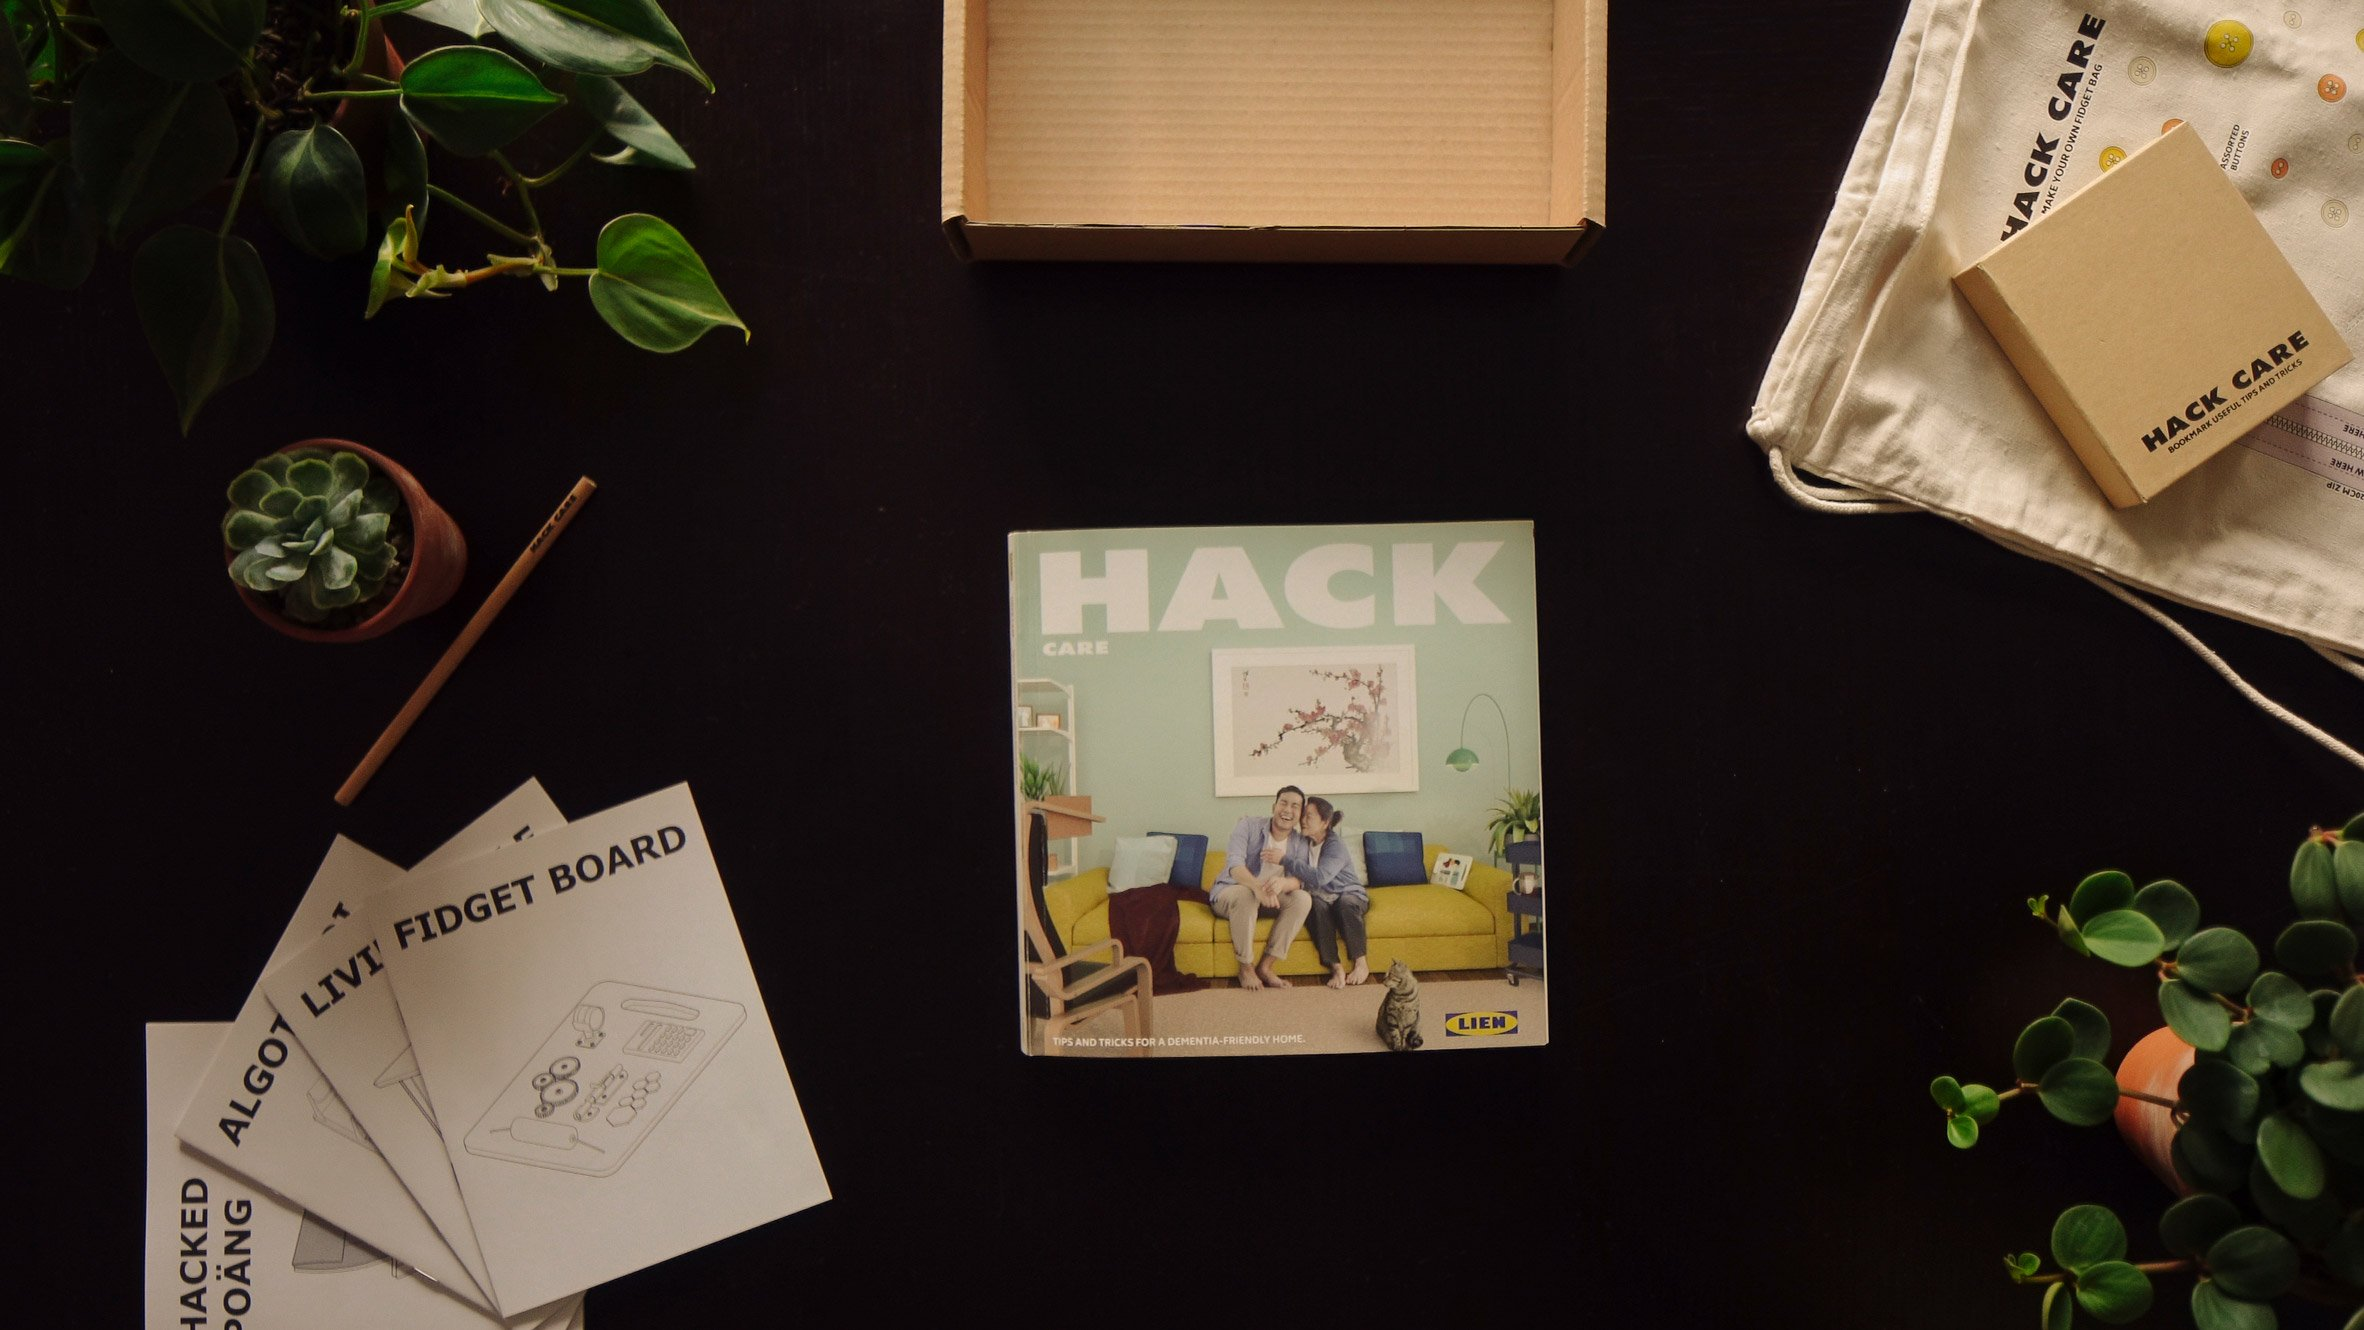 dementia friendly home - hack care catalog